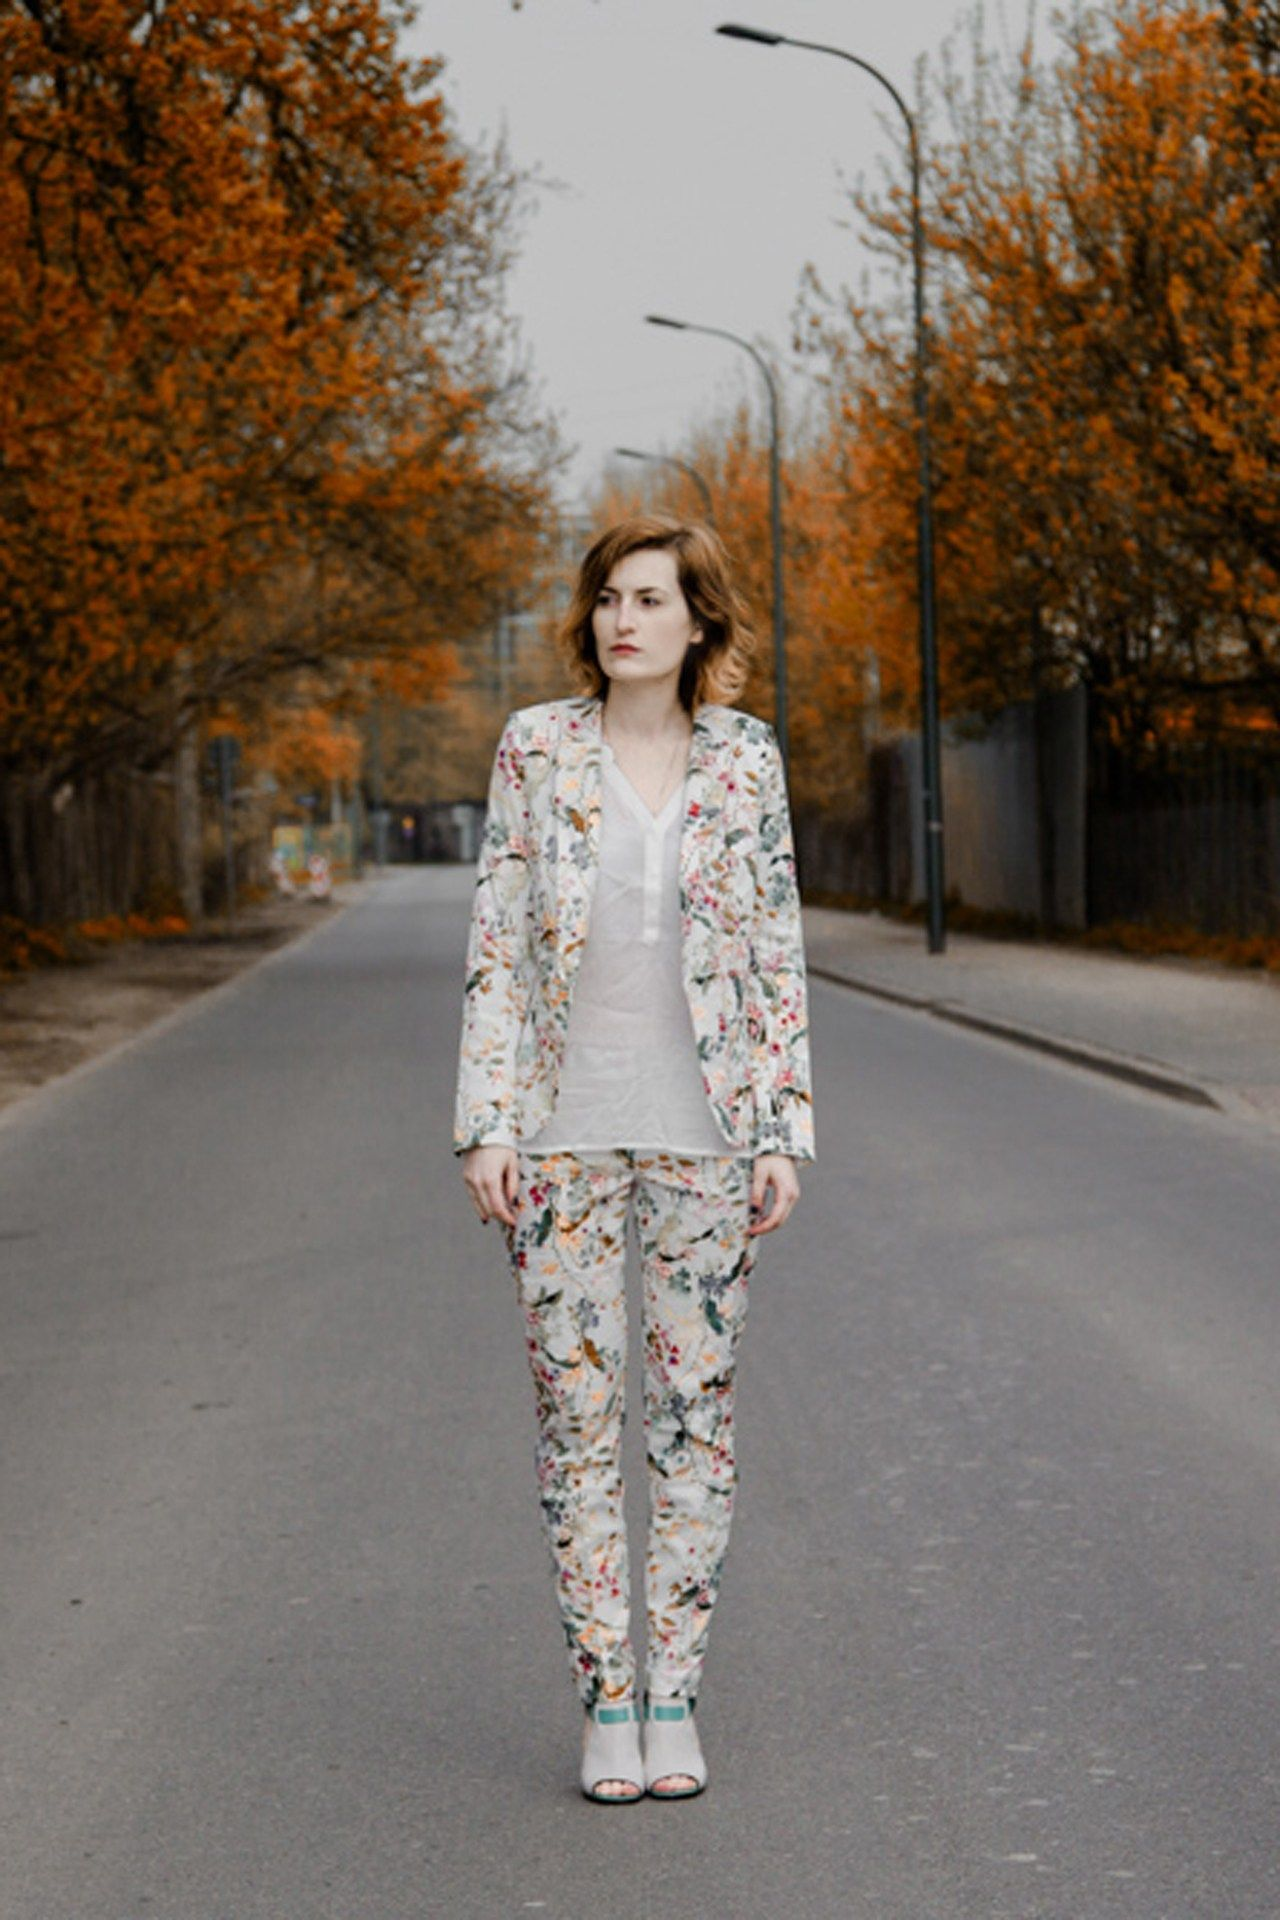 """Natalia Viktorovna, via vogue.co.uk. """"My suit is by Orsay and my shoes are by Centro."""""""